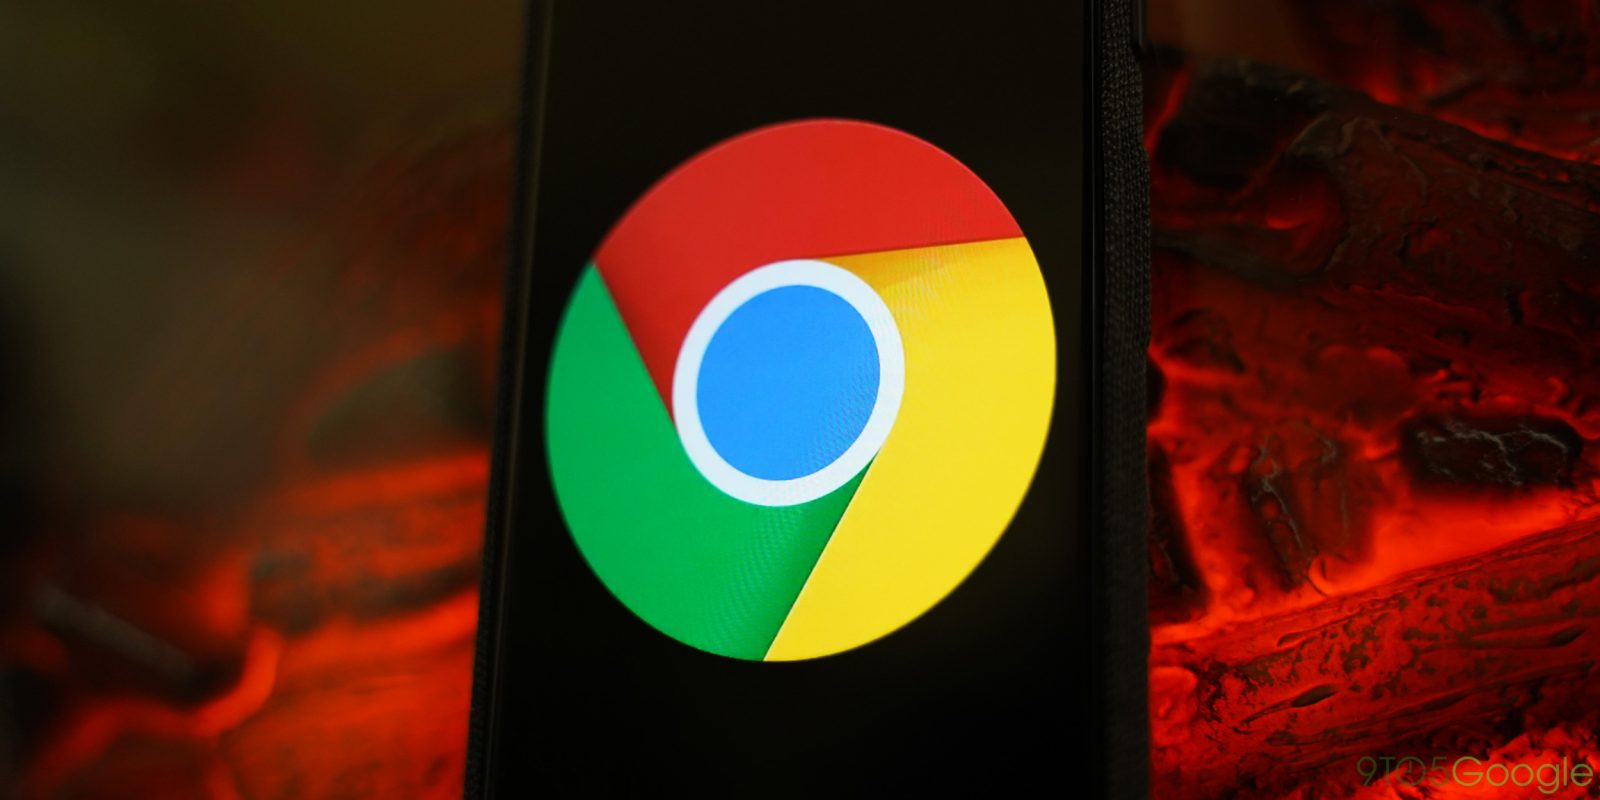 Chrome 73 for iOS adds built-in website debugging tool to view